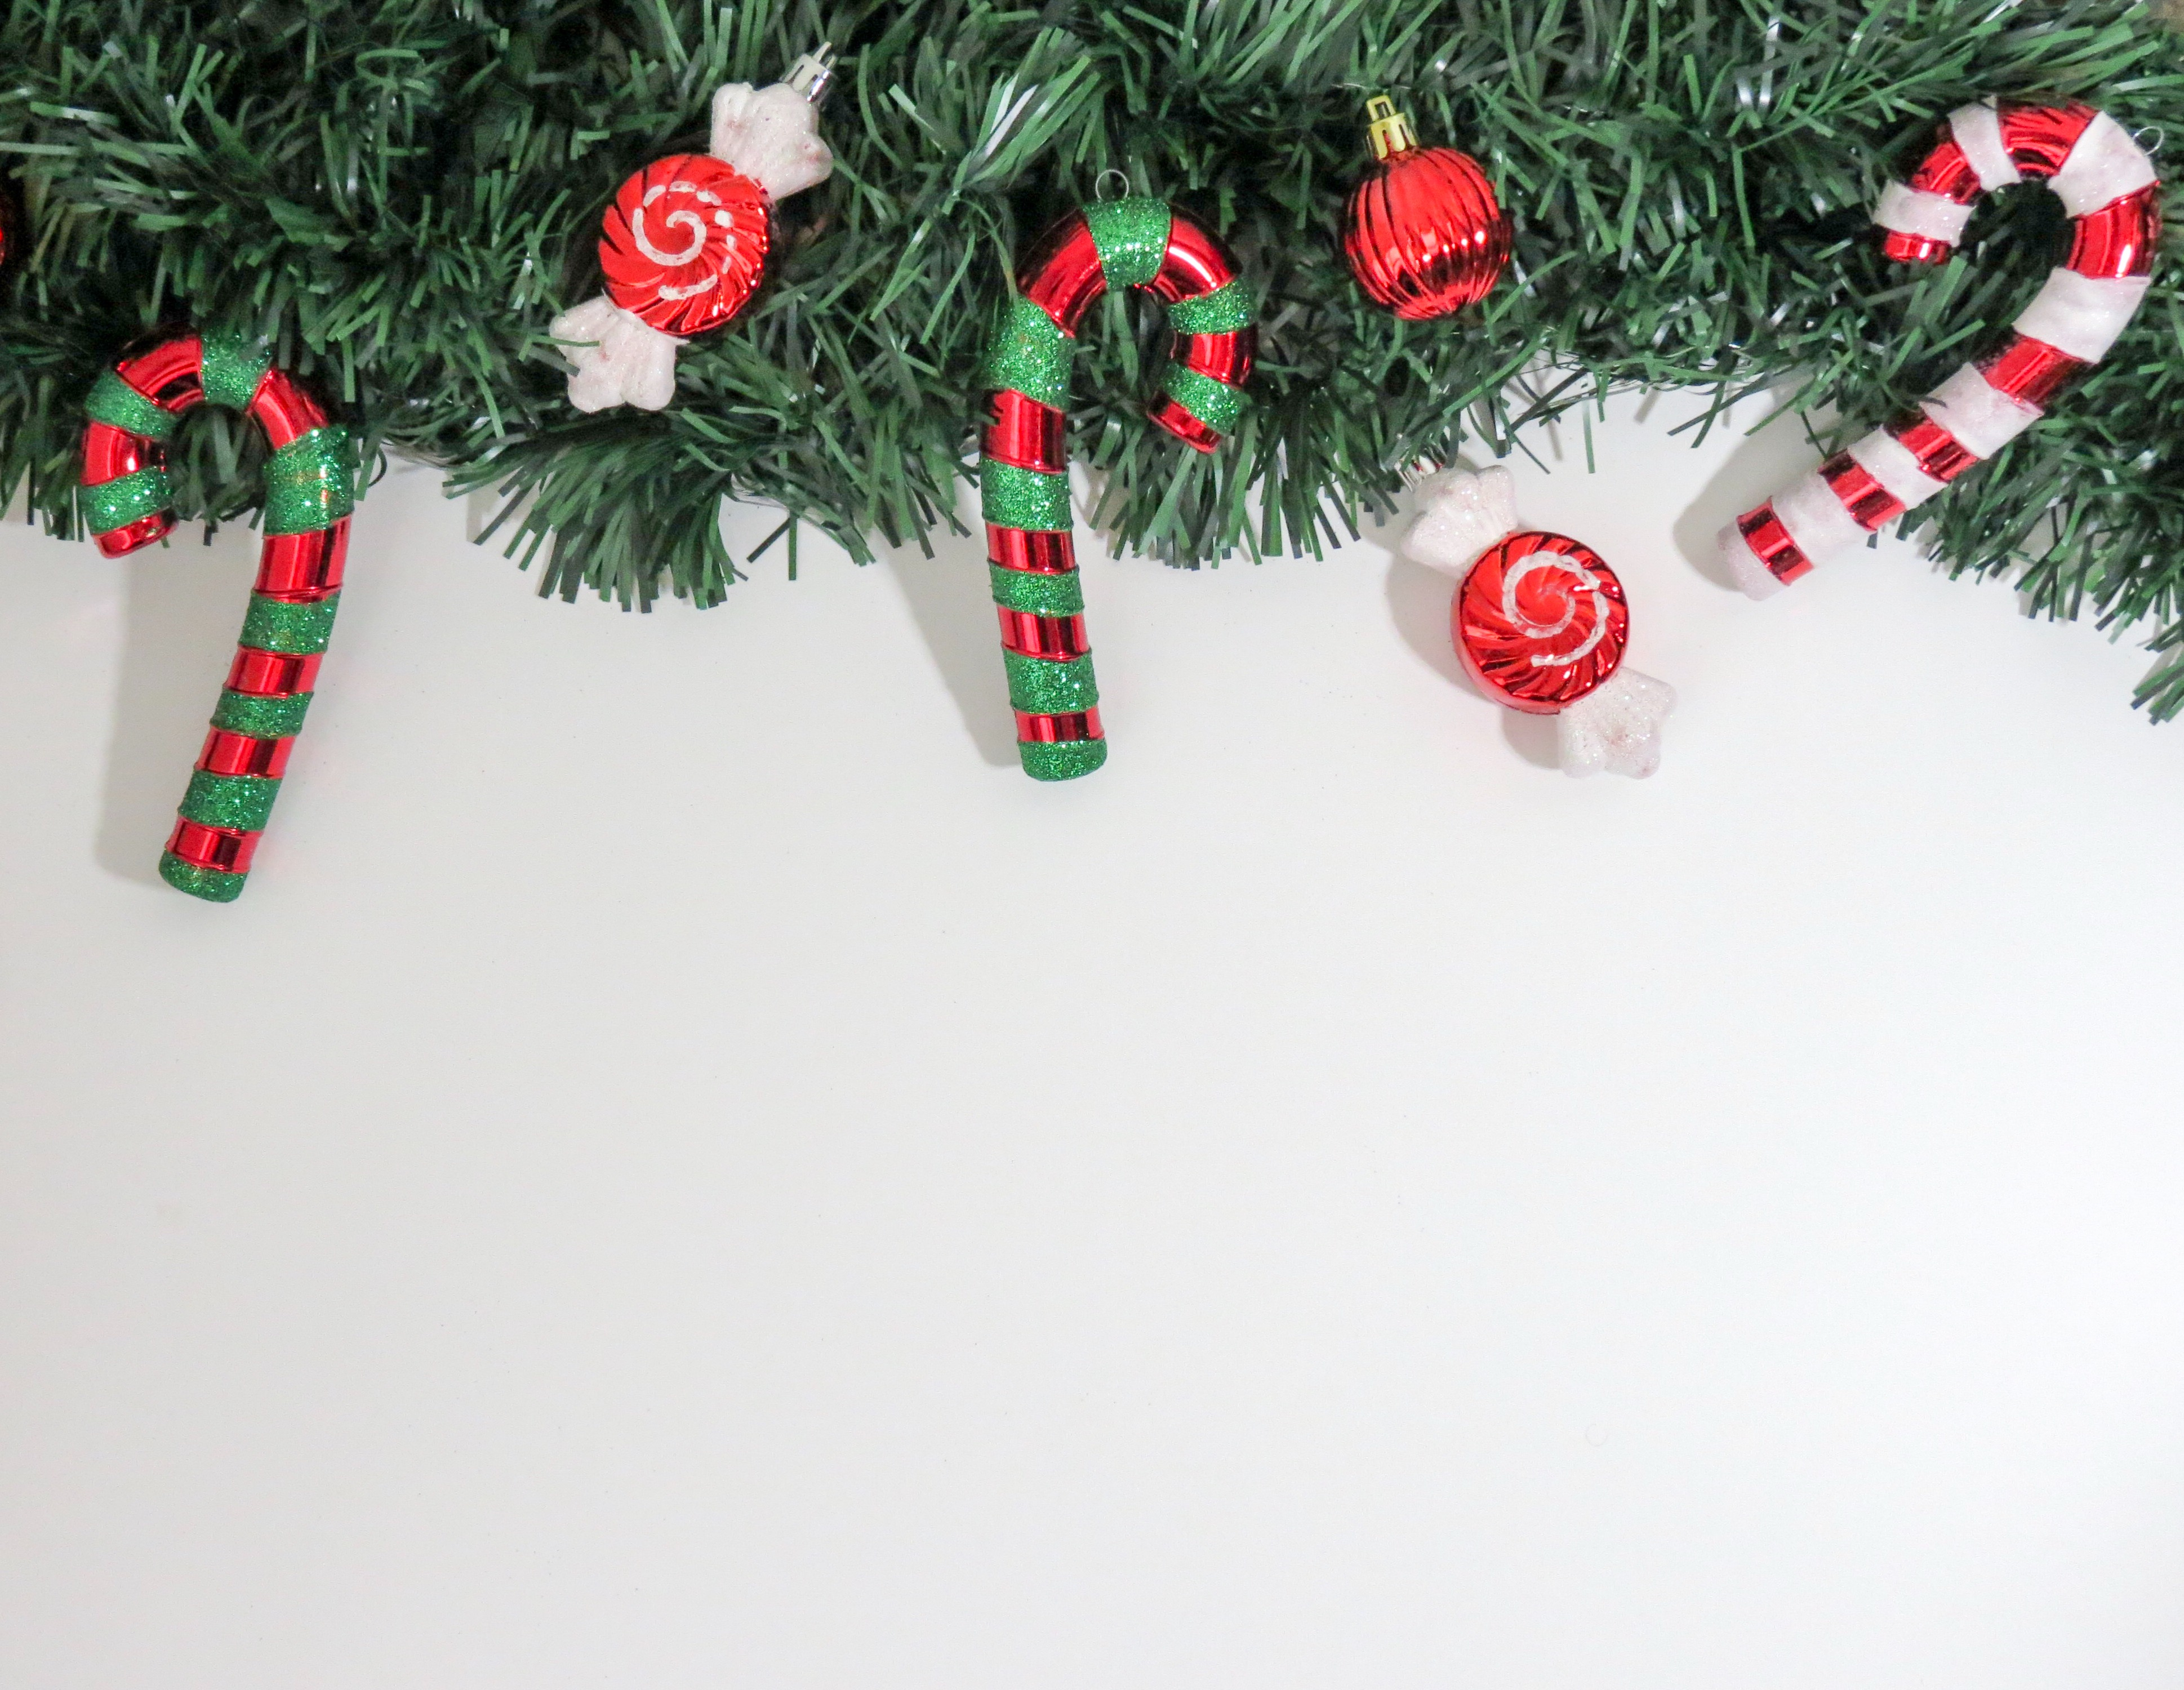 Popular Wallpapers For Iphone 5 Christmas Images 183 Pexels 183 Free Stock Photos